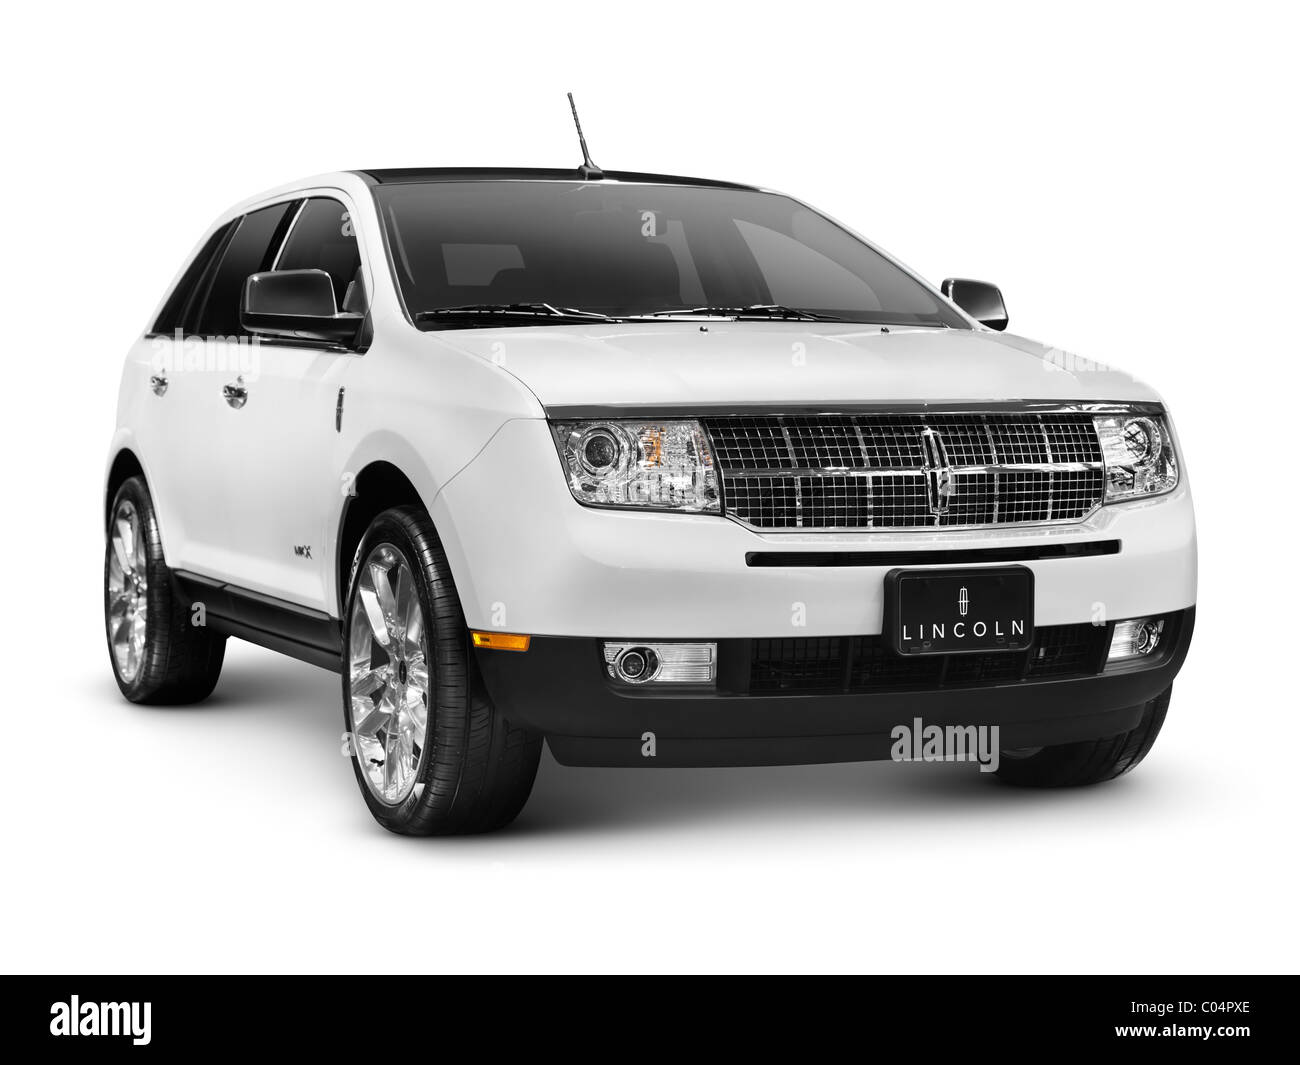 car lincoln stock photos car lincoln stock images alamy. Black Bedroom Furniture Sets. Home Design Ideas